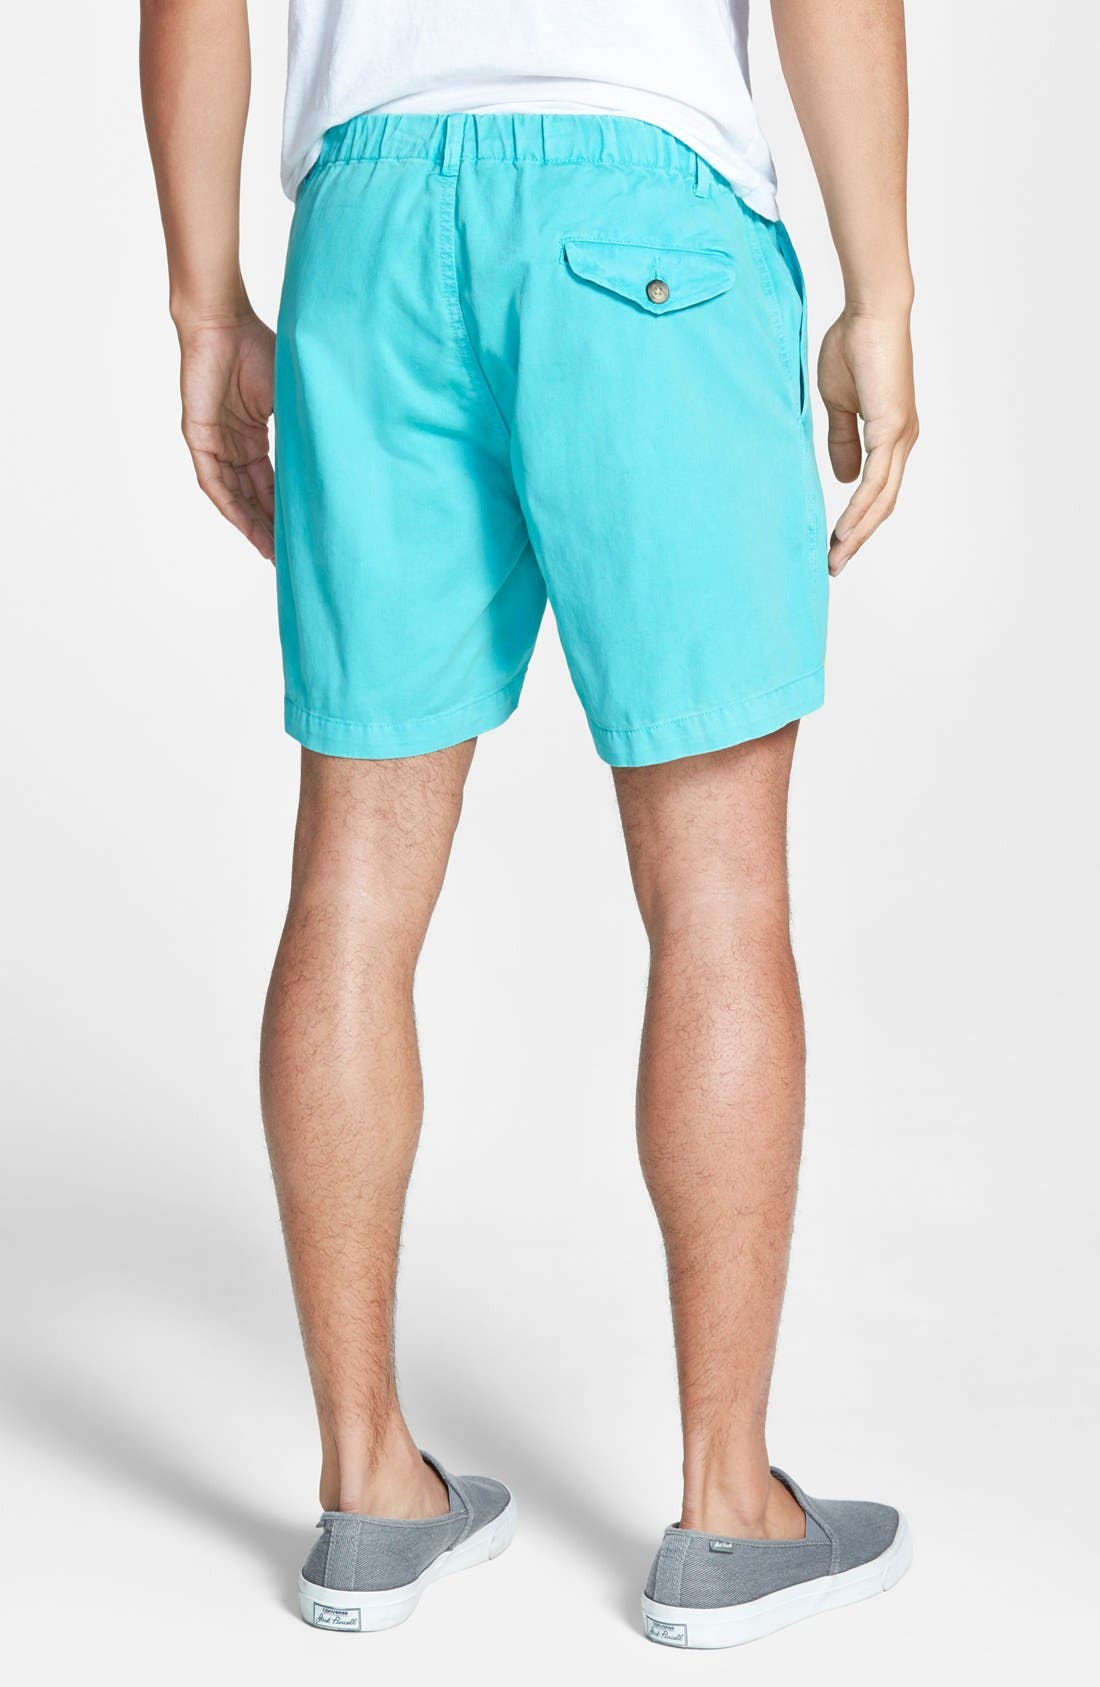 'Snappers' Vintage Wash Shorts,                             Alternate thumbnail 3, color,                             461